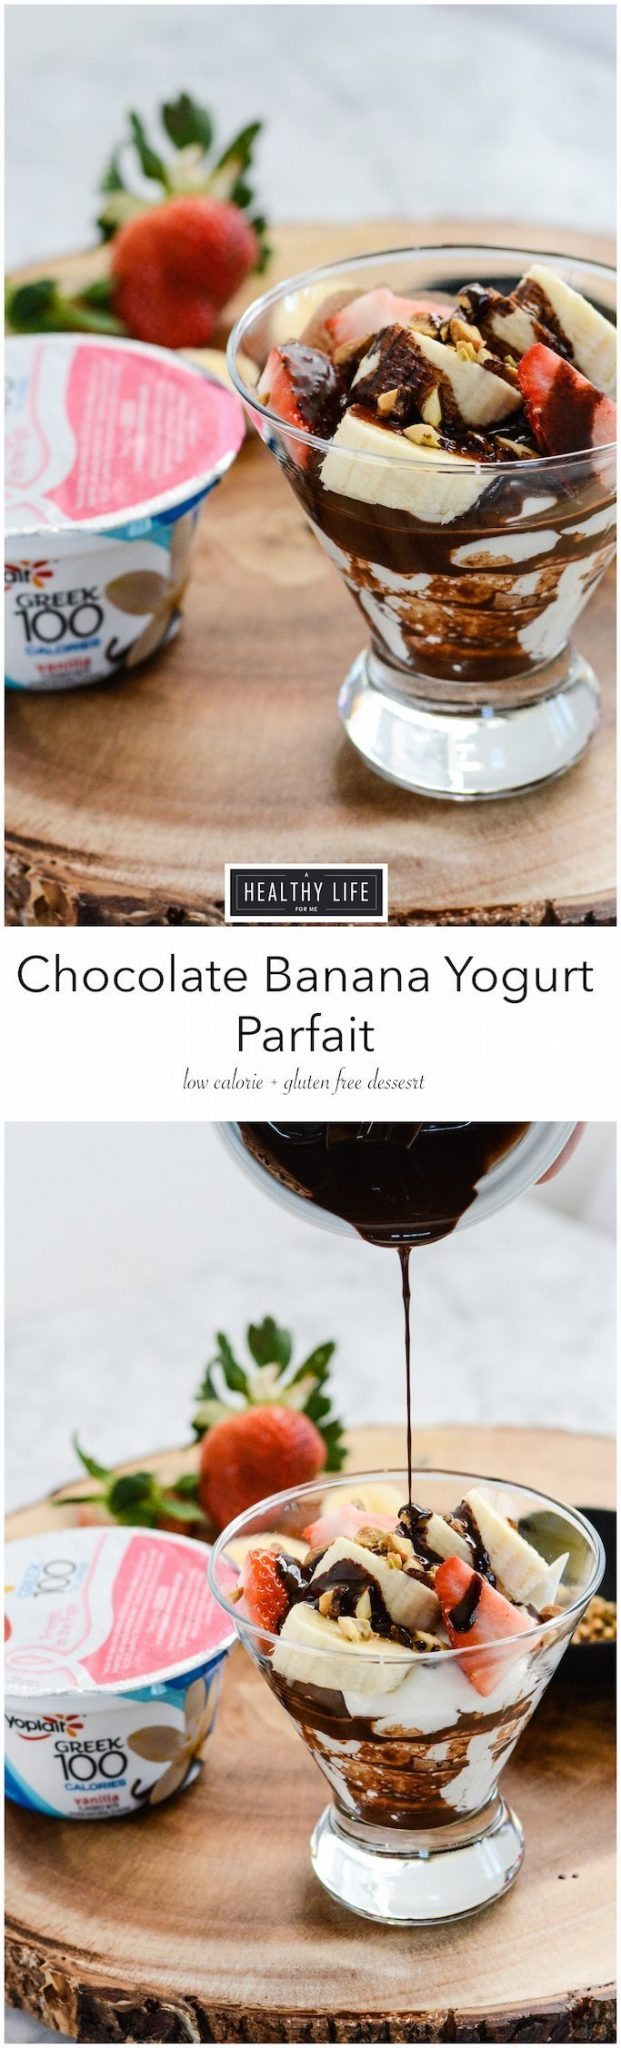 Chocolate Banana Yogurt Parfait_